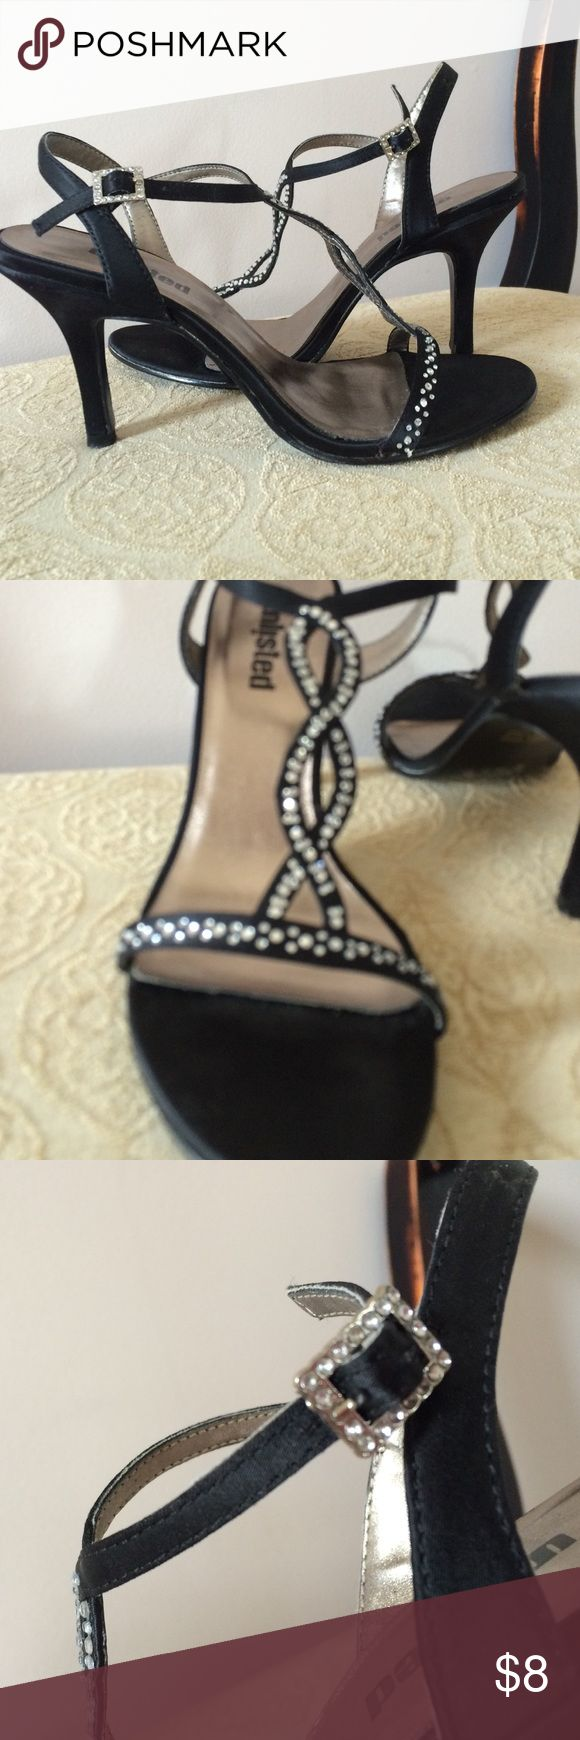 Worn but still very pretty dress heel. Great shape Shoe Department black heels with crystal embellishments. The lining is starting to come up a little at the ball but it's minor. Great deal. Shoes Heels